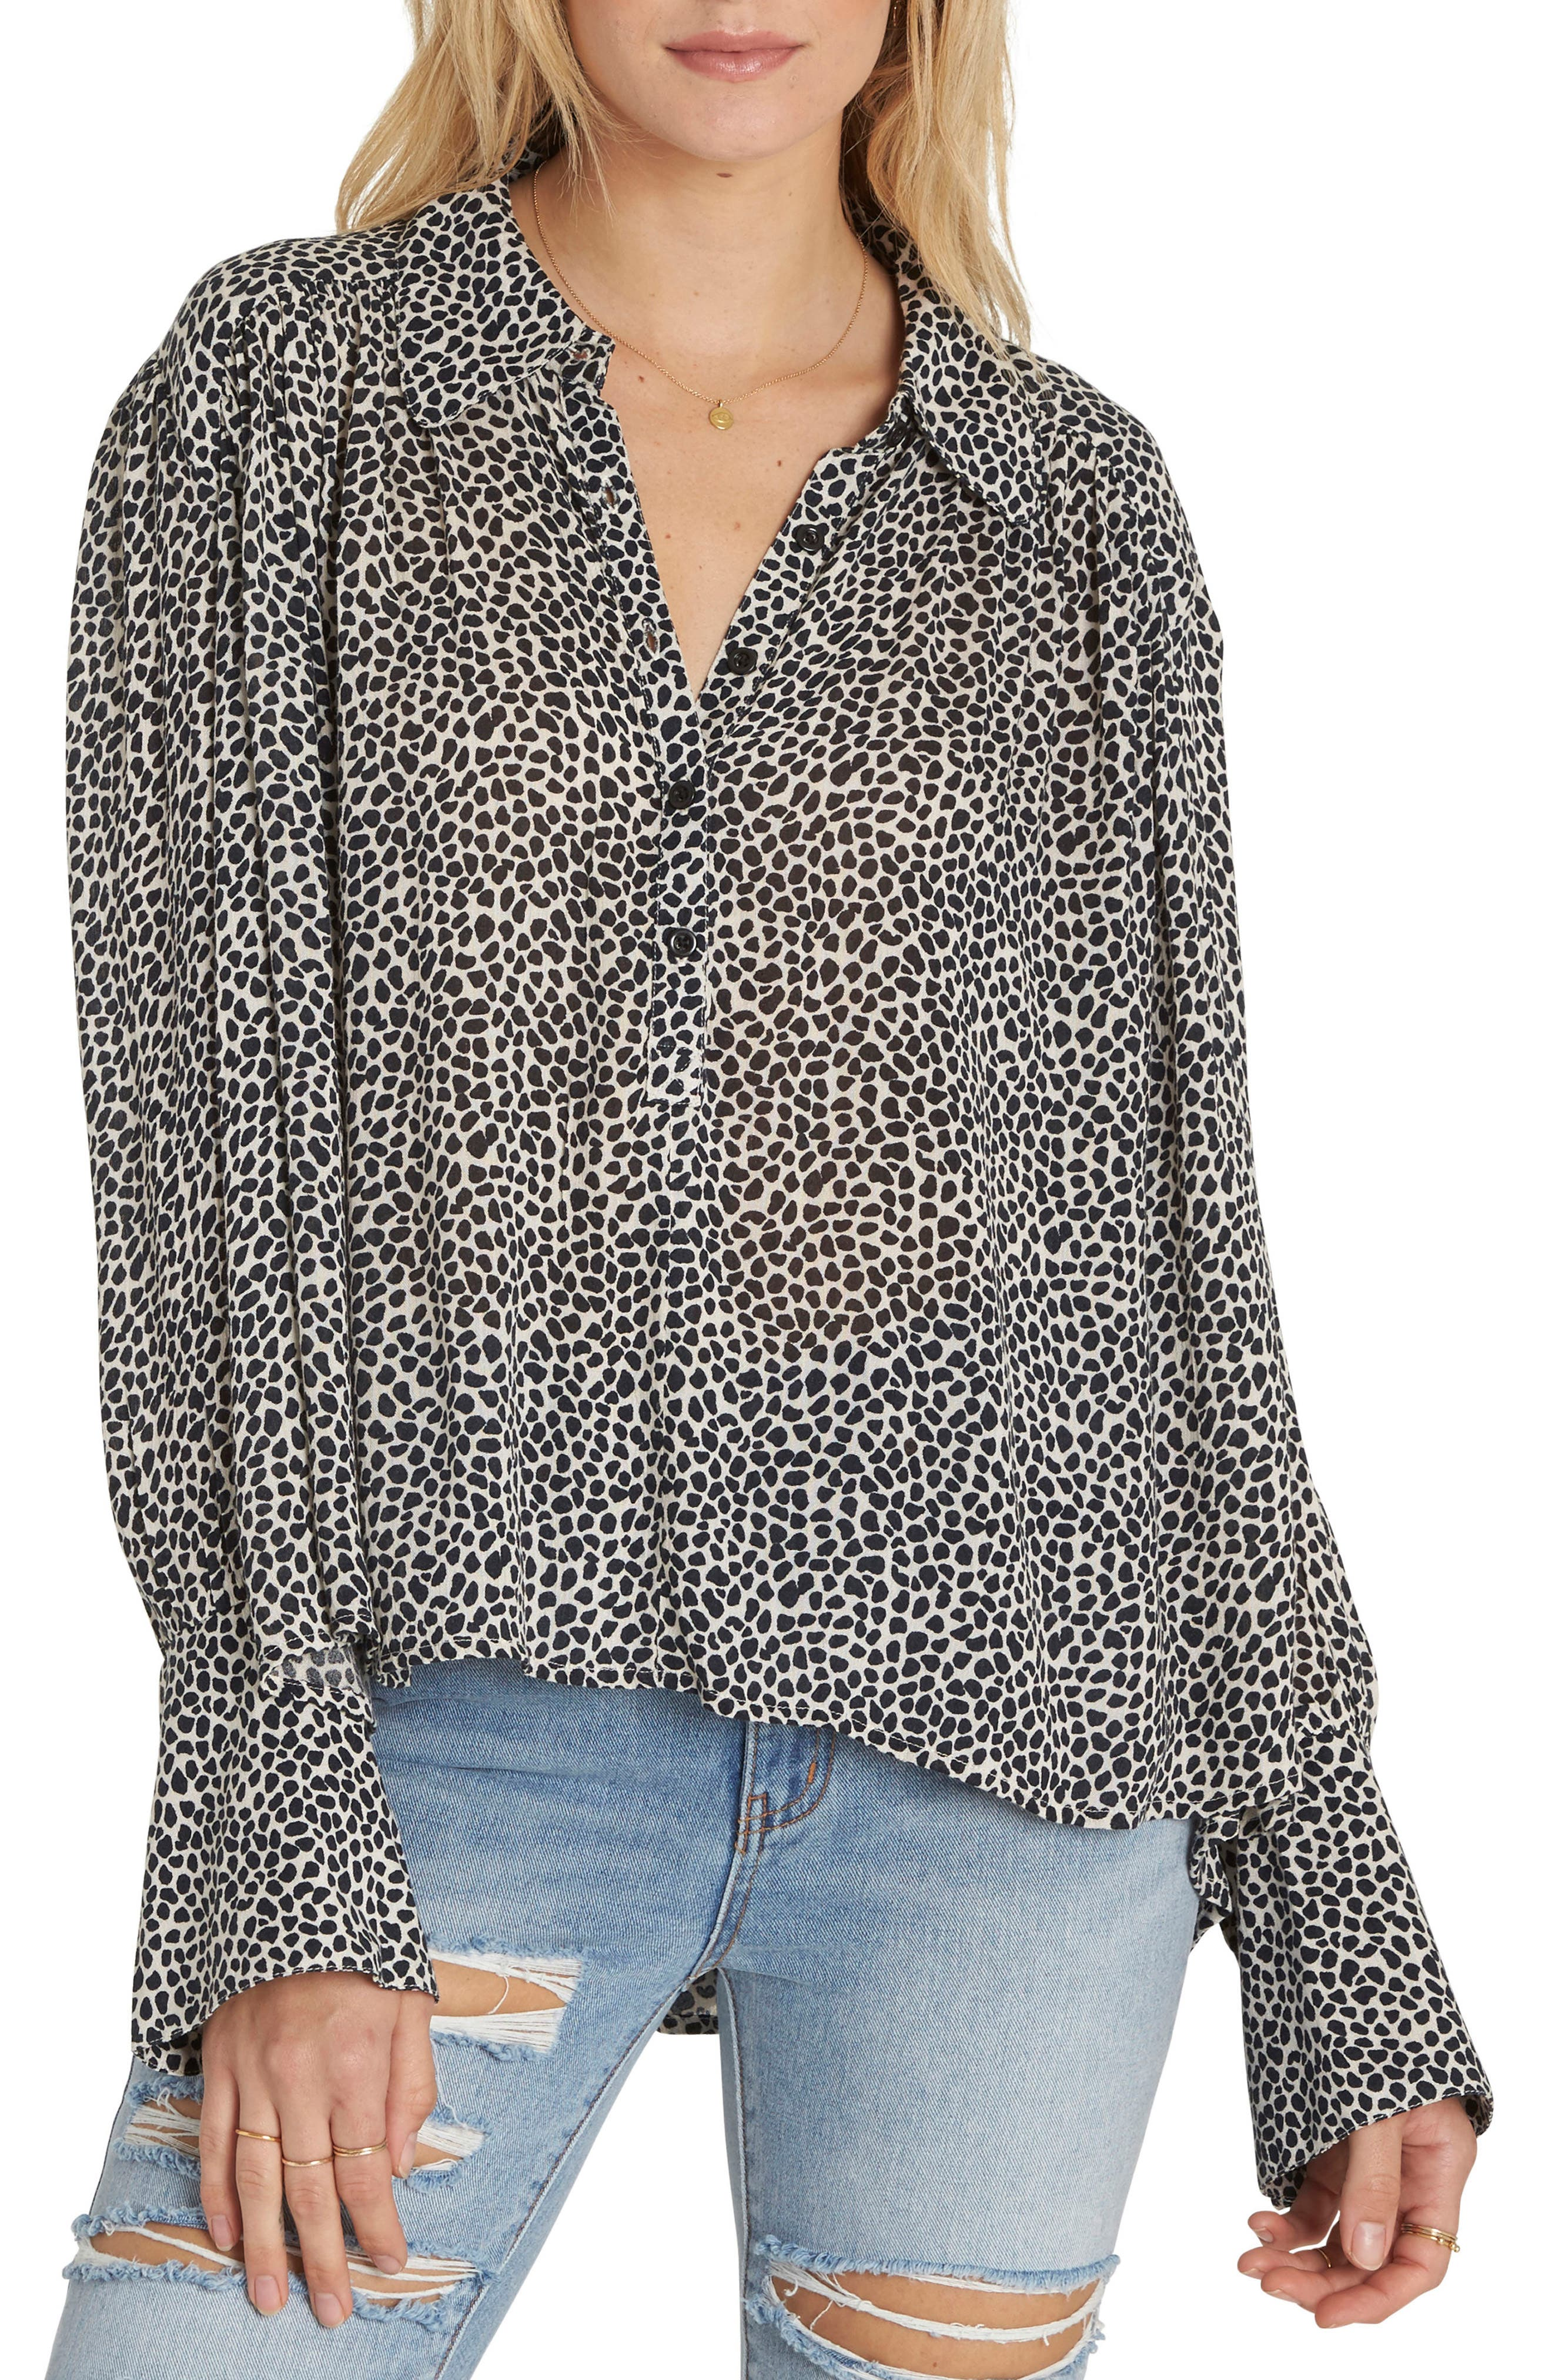 Groovy Moves Flare Cuff Top,                         Main,                         color, Ivory